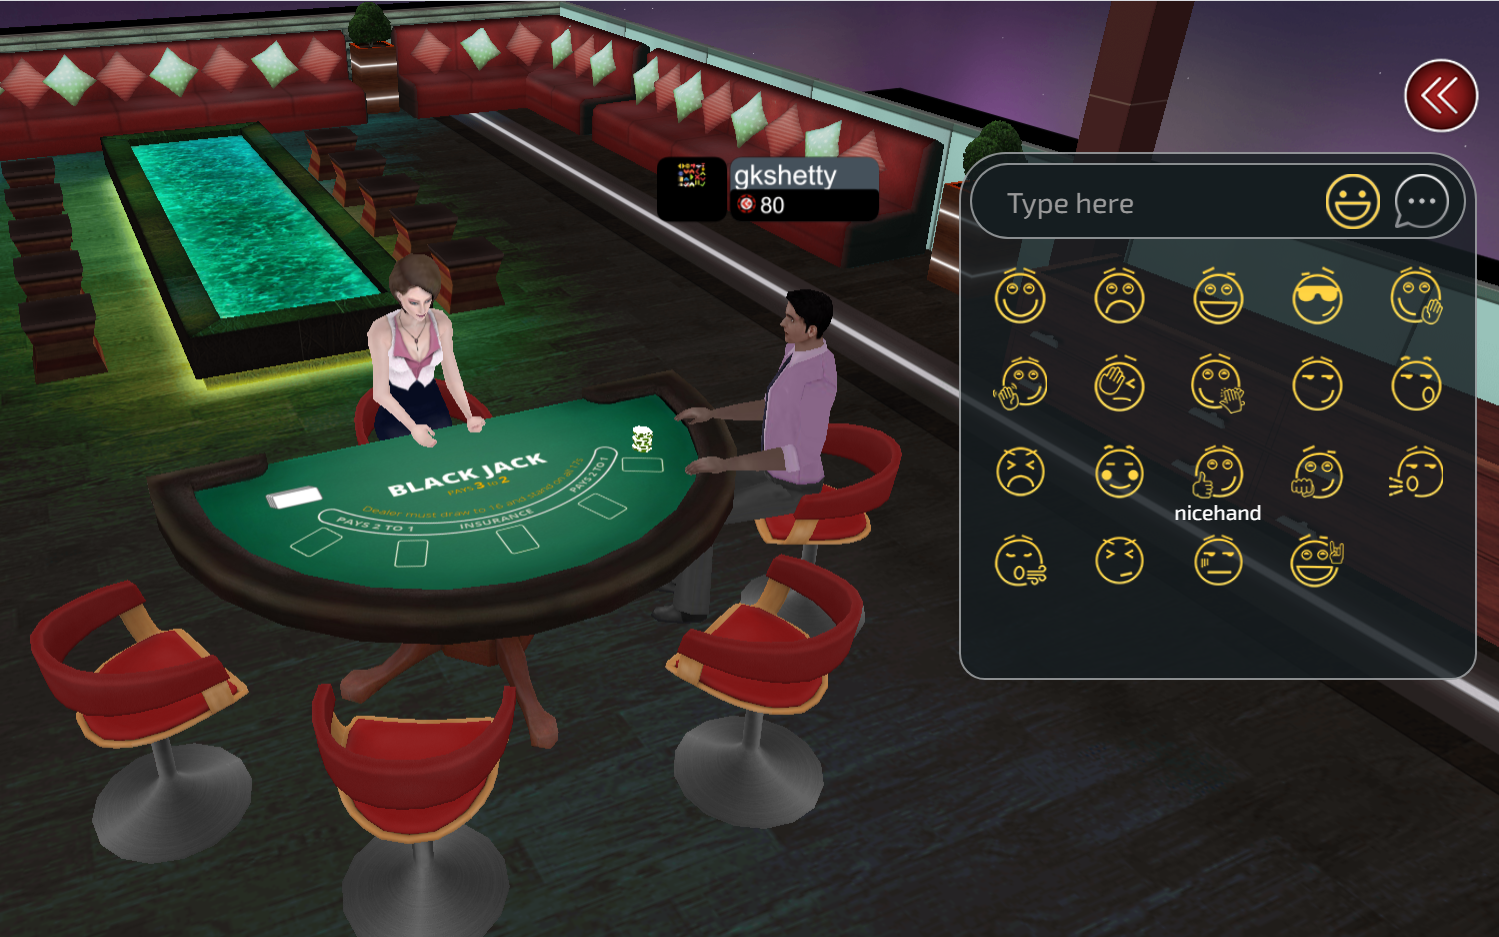 Chat feature in Gamentio blackjack card game